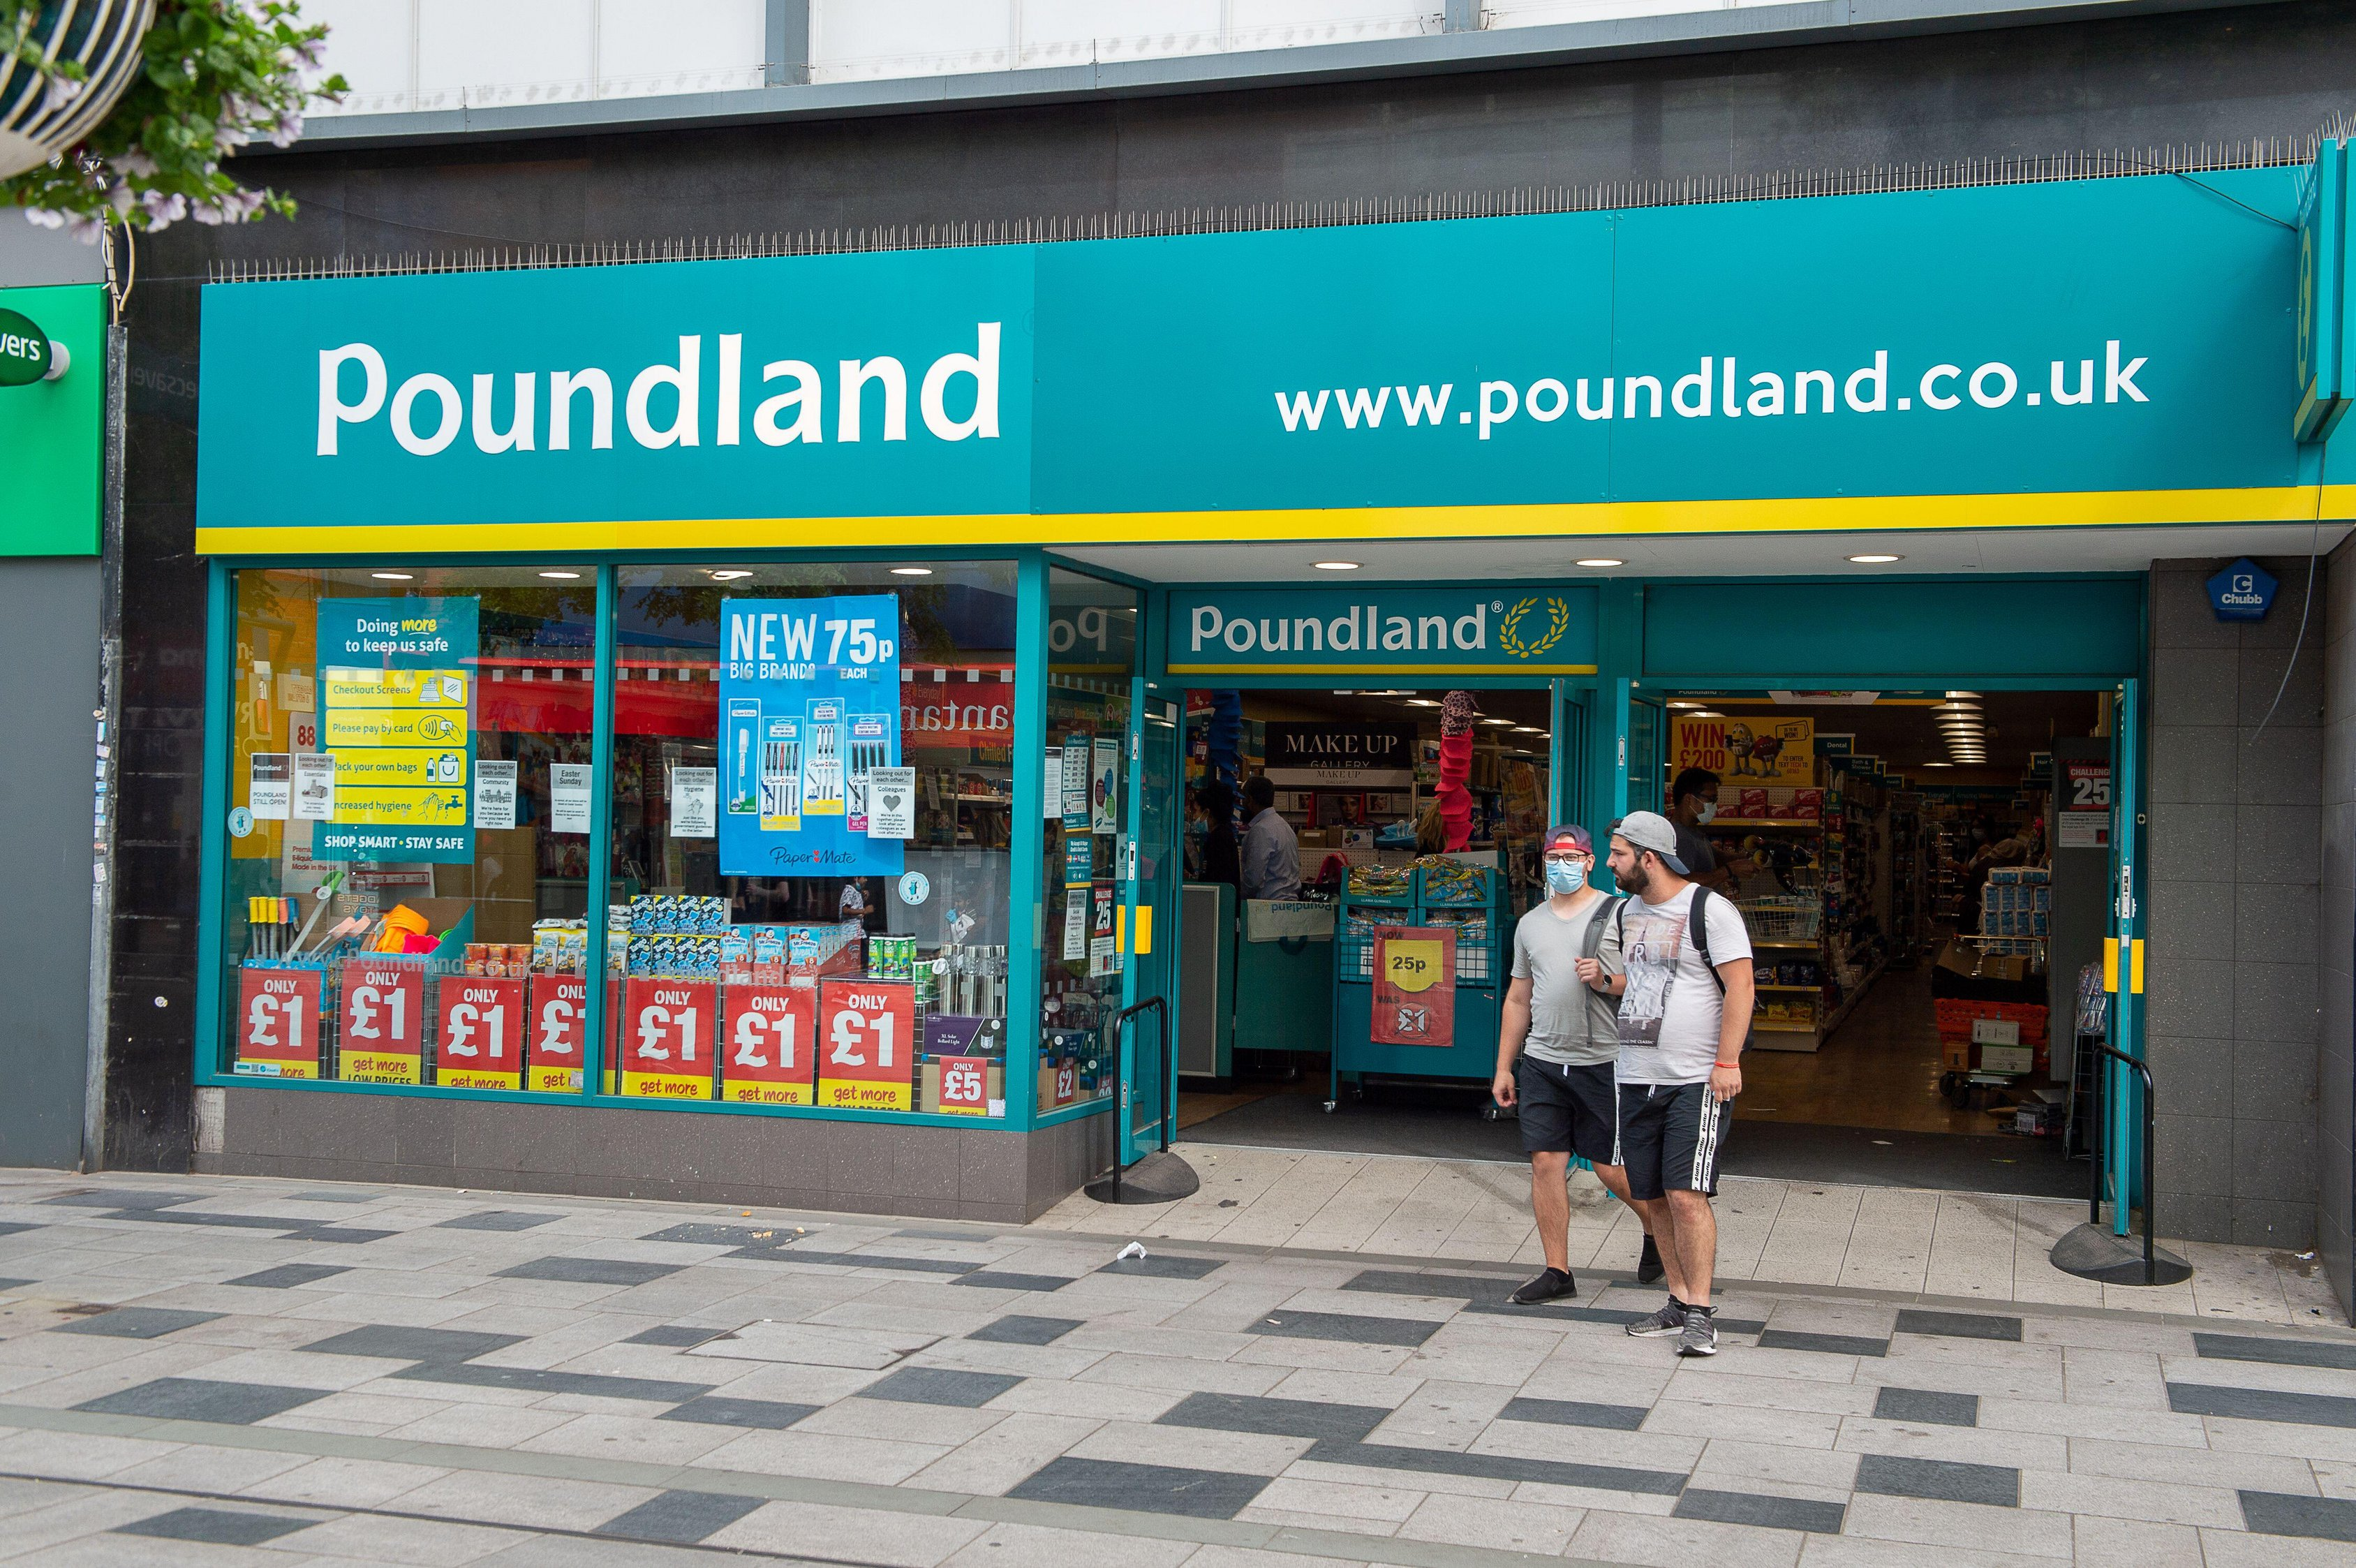 Most of Poundland's stores will be remaining open through lockdown